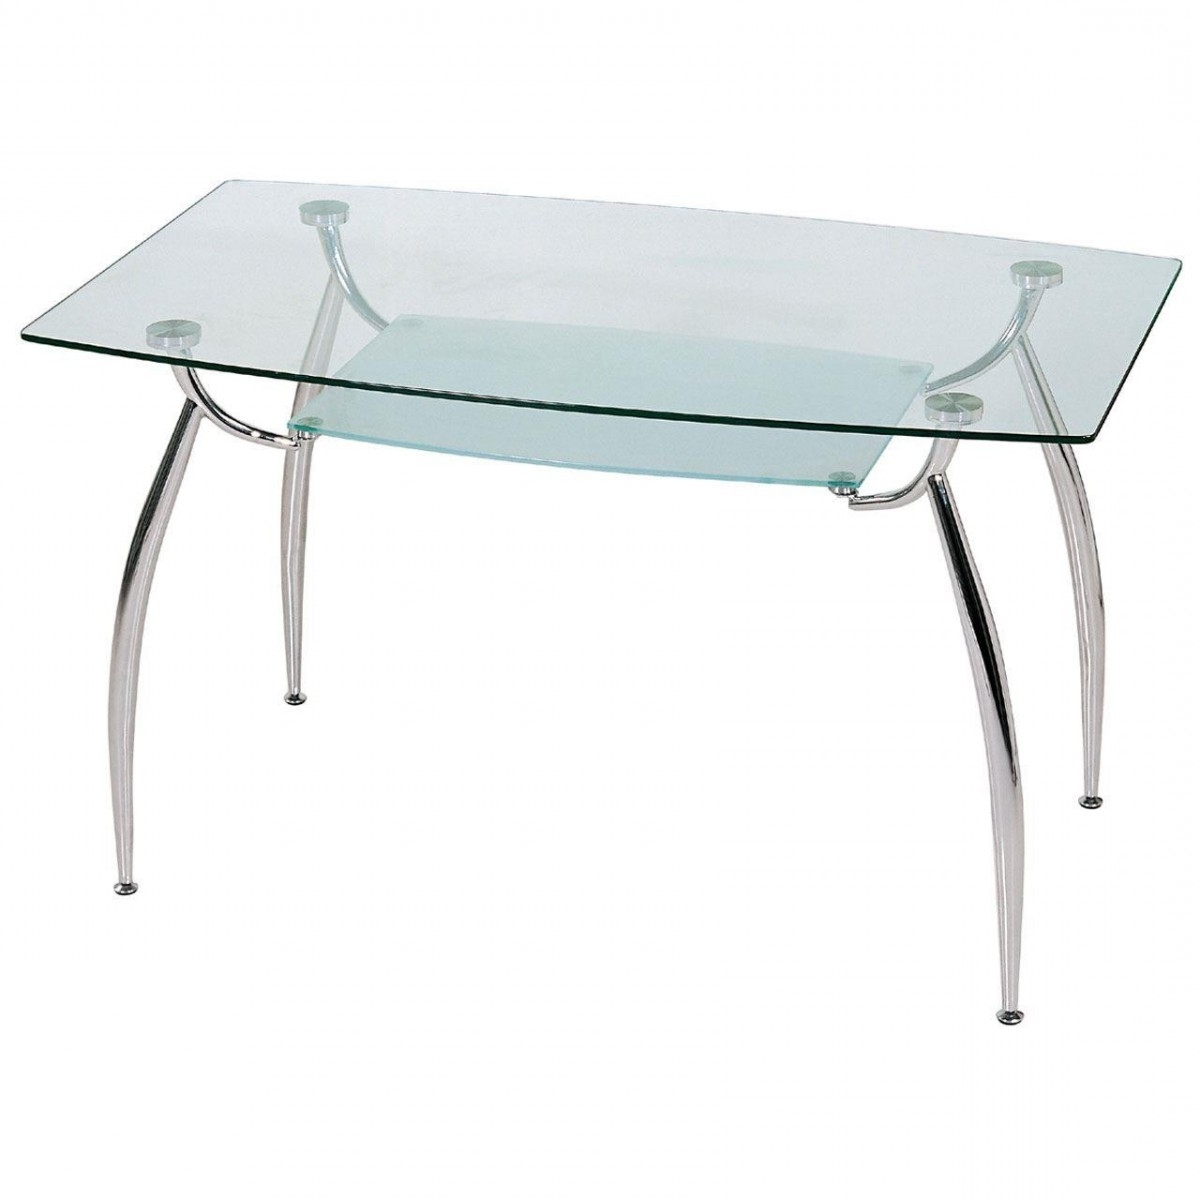 Lazio Dining Tables Regarding Preferred The Modern Home Lazio Dining Table – Clearance – Searchstyle (View 13 of 25)